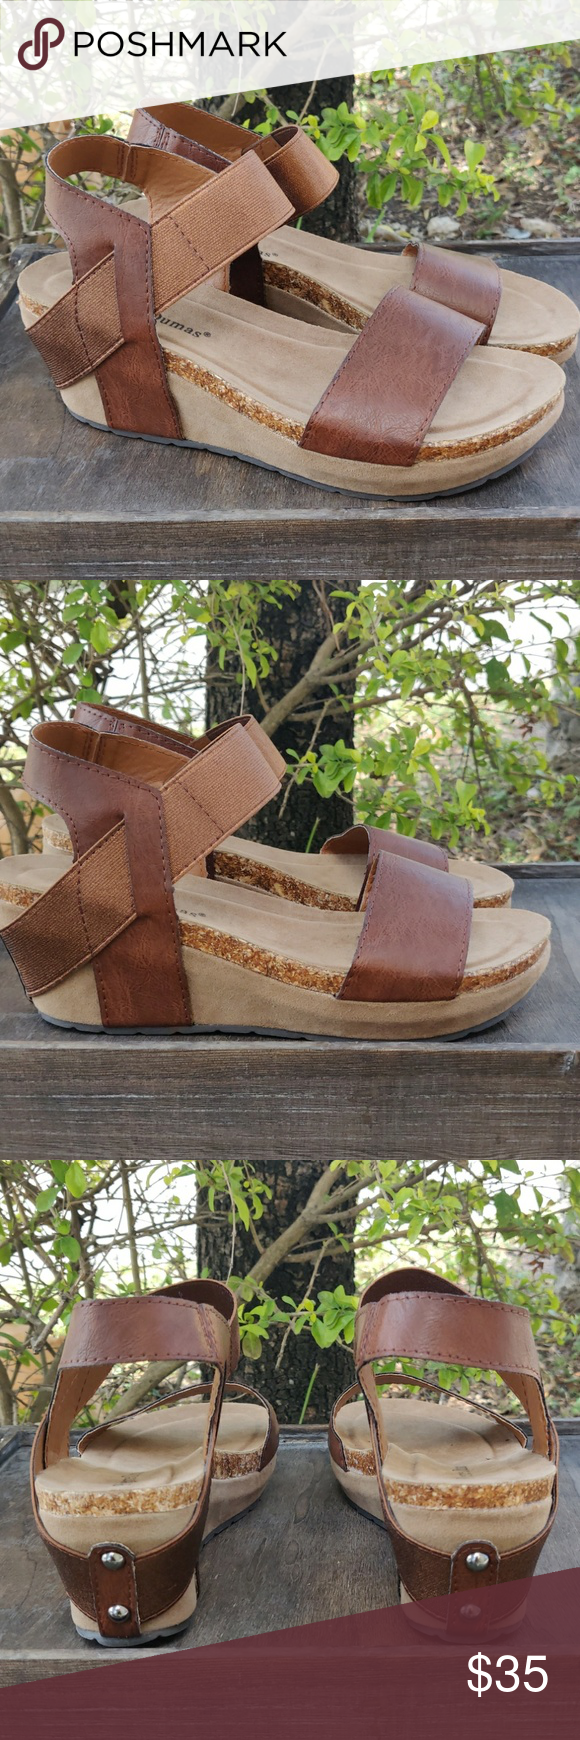 Womens Low Wedge Sandals Heels Whiskey 2 1/2  inch Wedge  Comfort Cushioned Footbed Elastic goring for a secure fit 223467906111 Pierre Dumas Shoes Sandals #lowwedgesandals